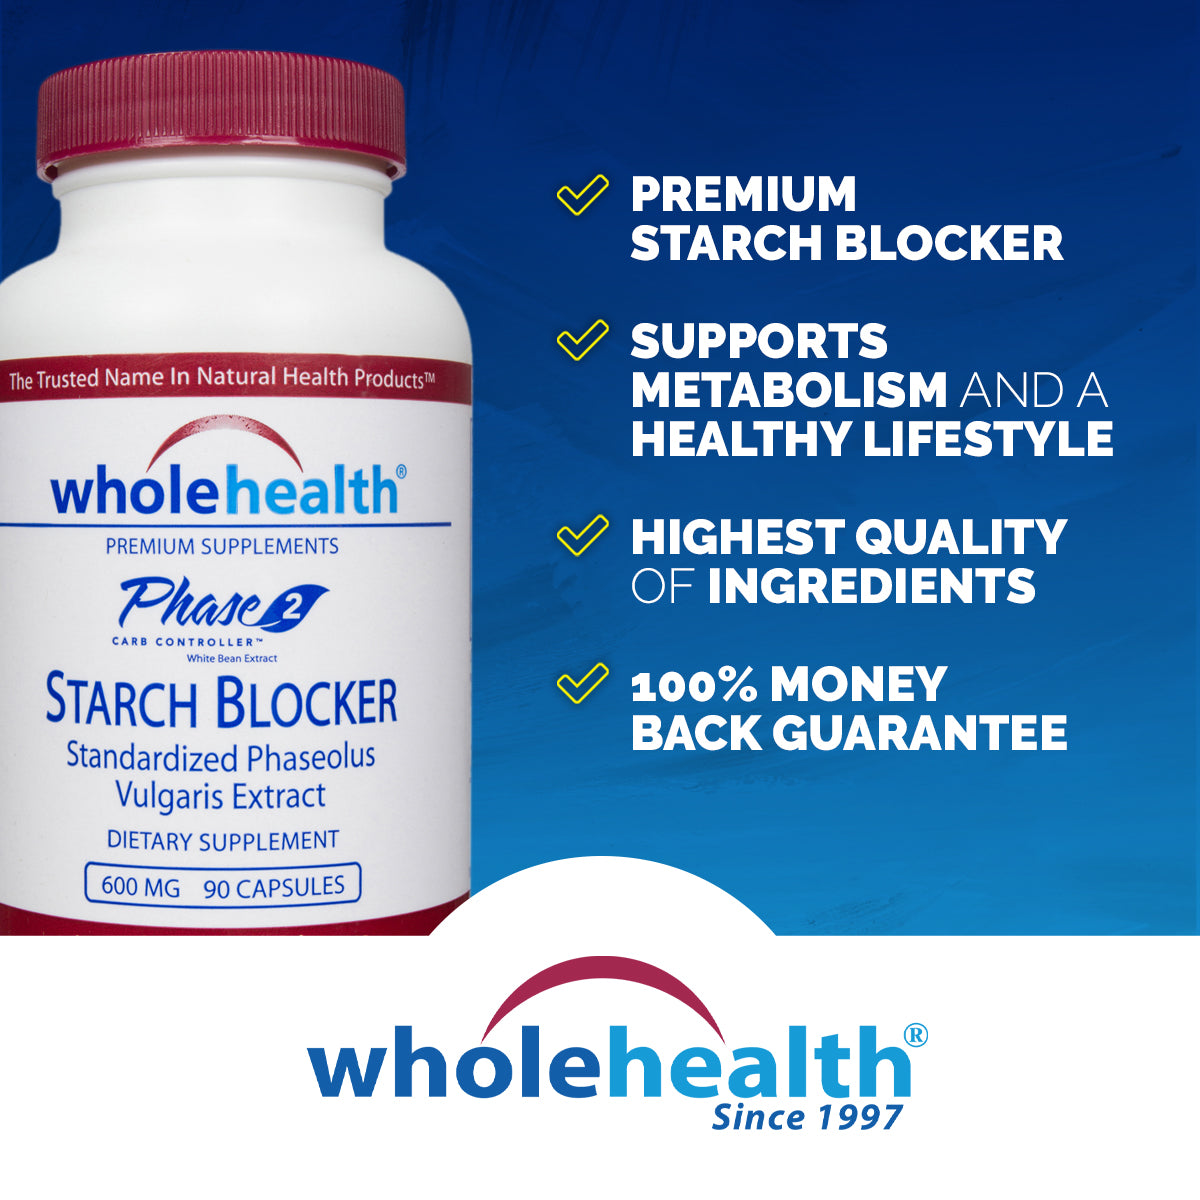 White Kidney Bean Extract - Phase 2 Starch Blocker 600mg (90 Capsules)